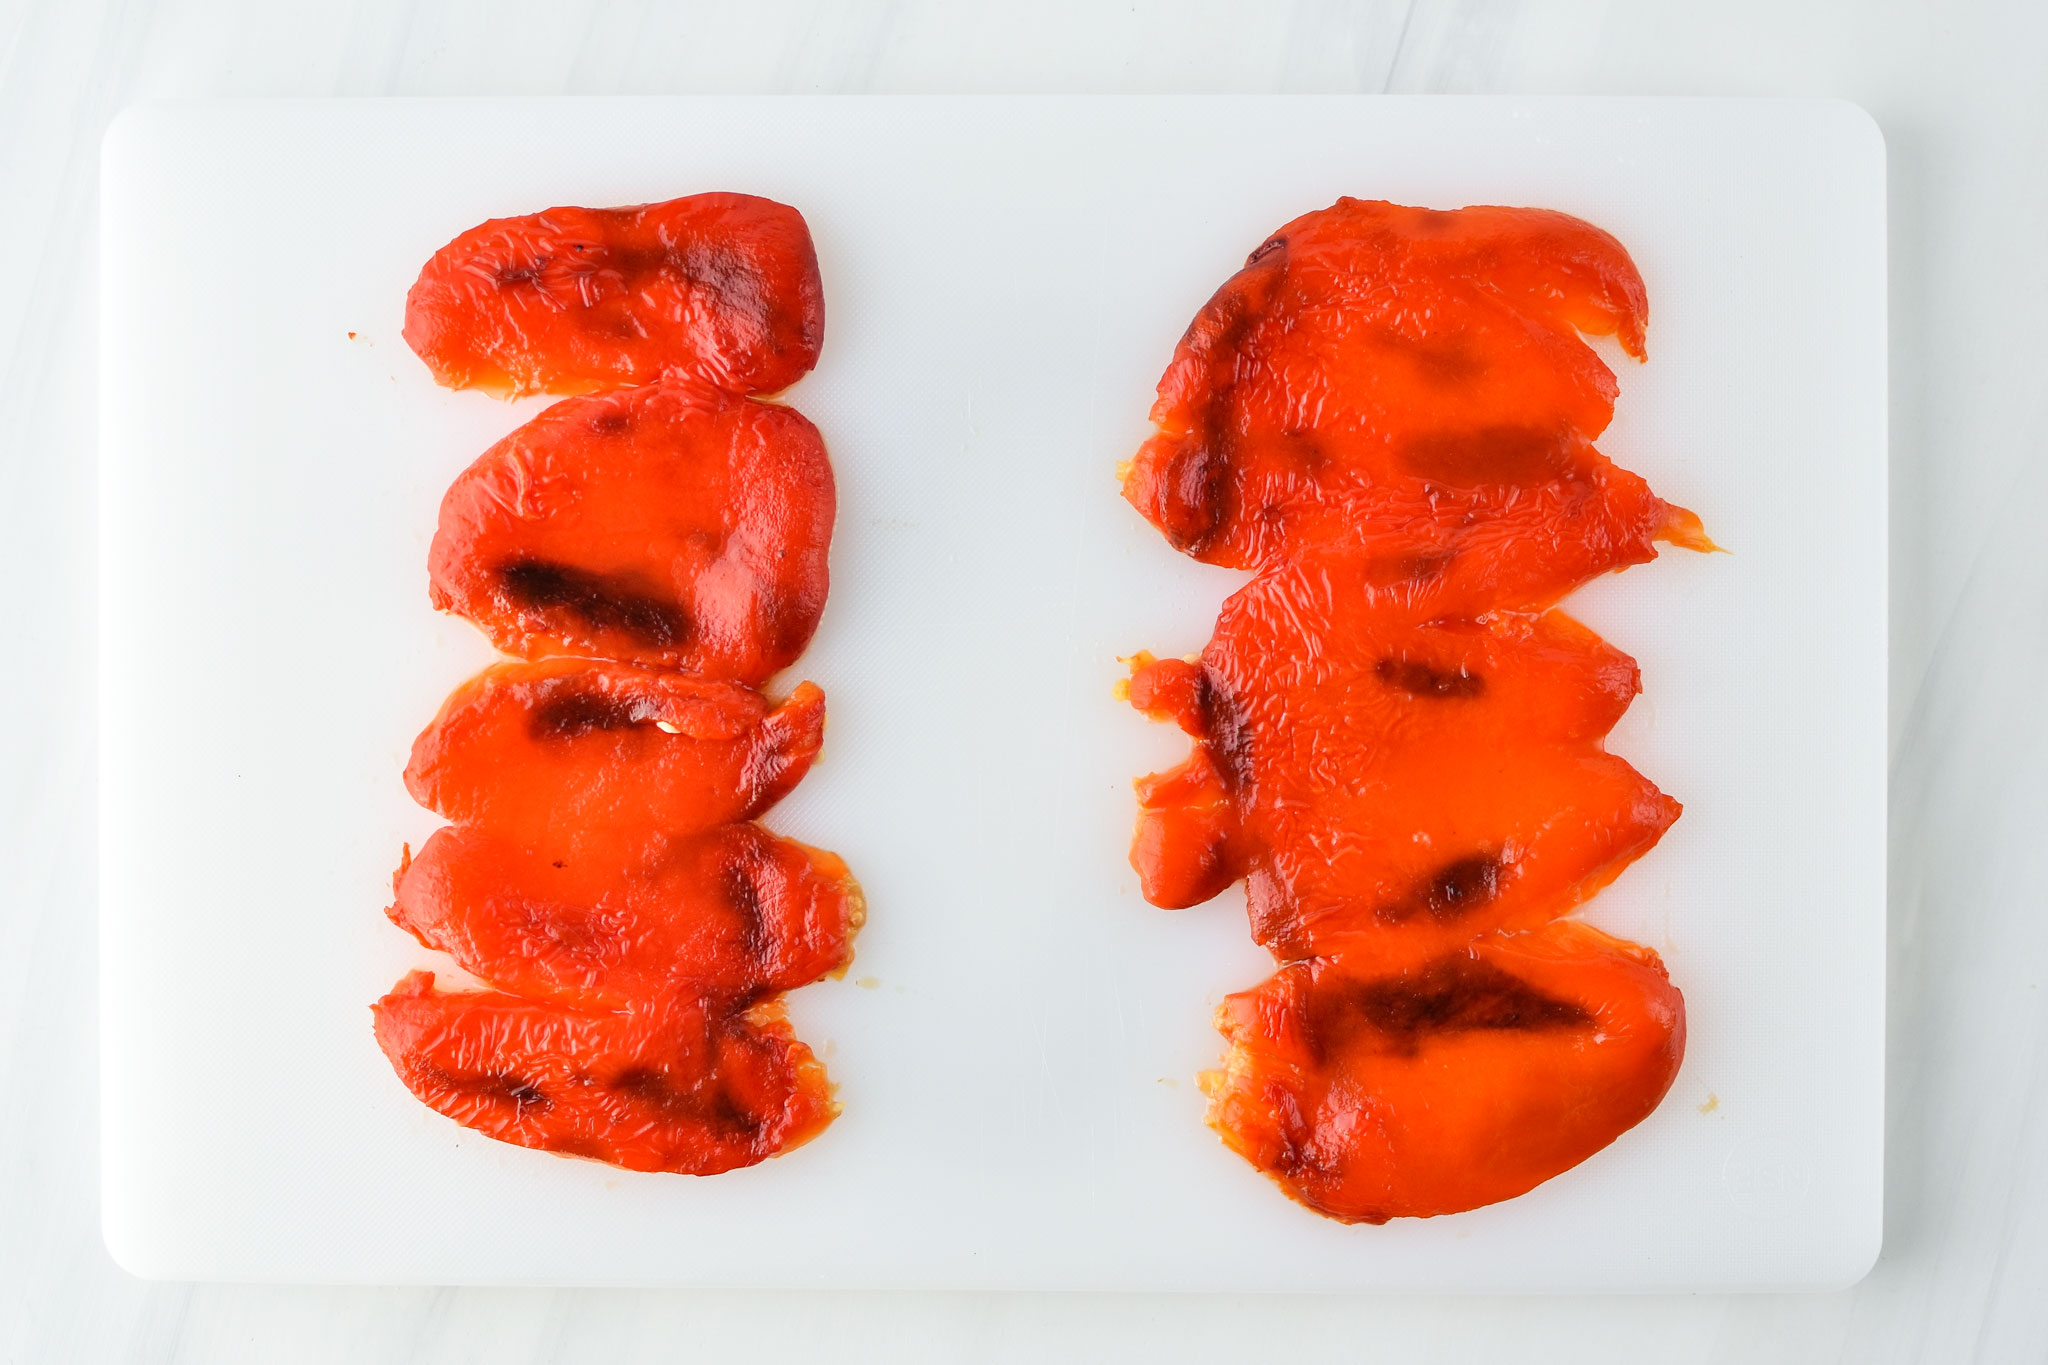 two red bell peppers roasted with stem, seeds and peel removed, laid out on a cutting board